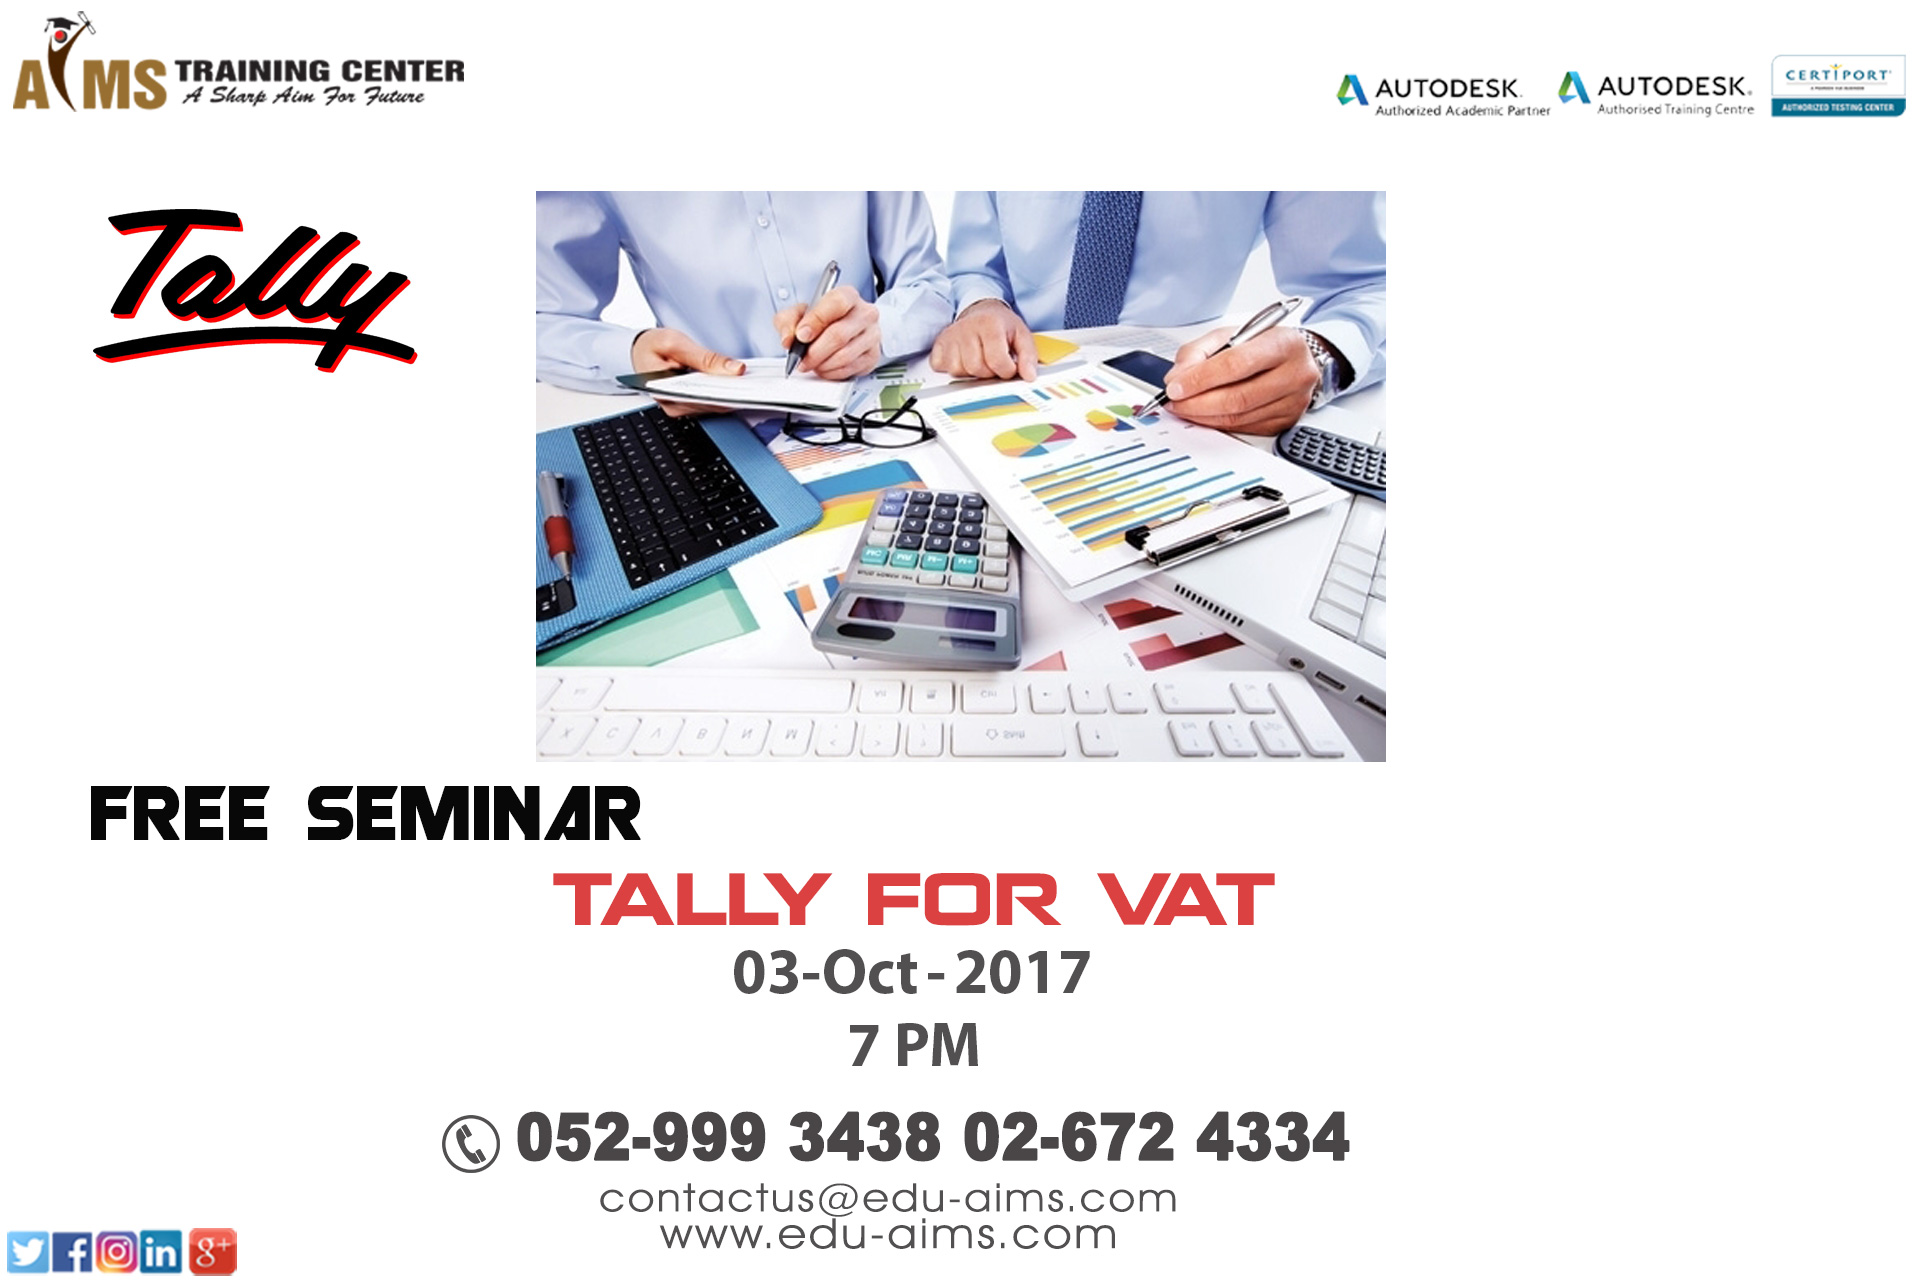 Free seminar on tally at aims training center abu dhabi tickets free seminar covers basic knowledge to meet the accounting requirements of the industry we not only teach the concepts but also help you learn 1betcityfo Gallery